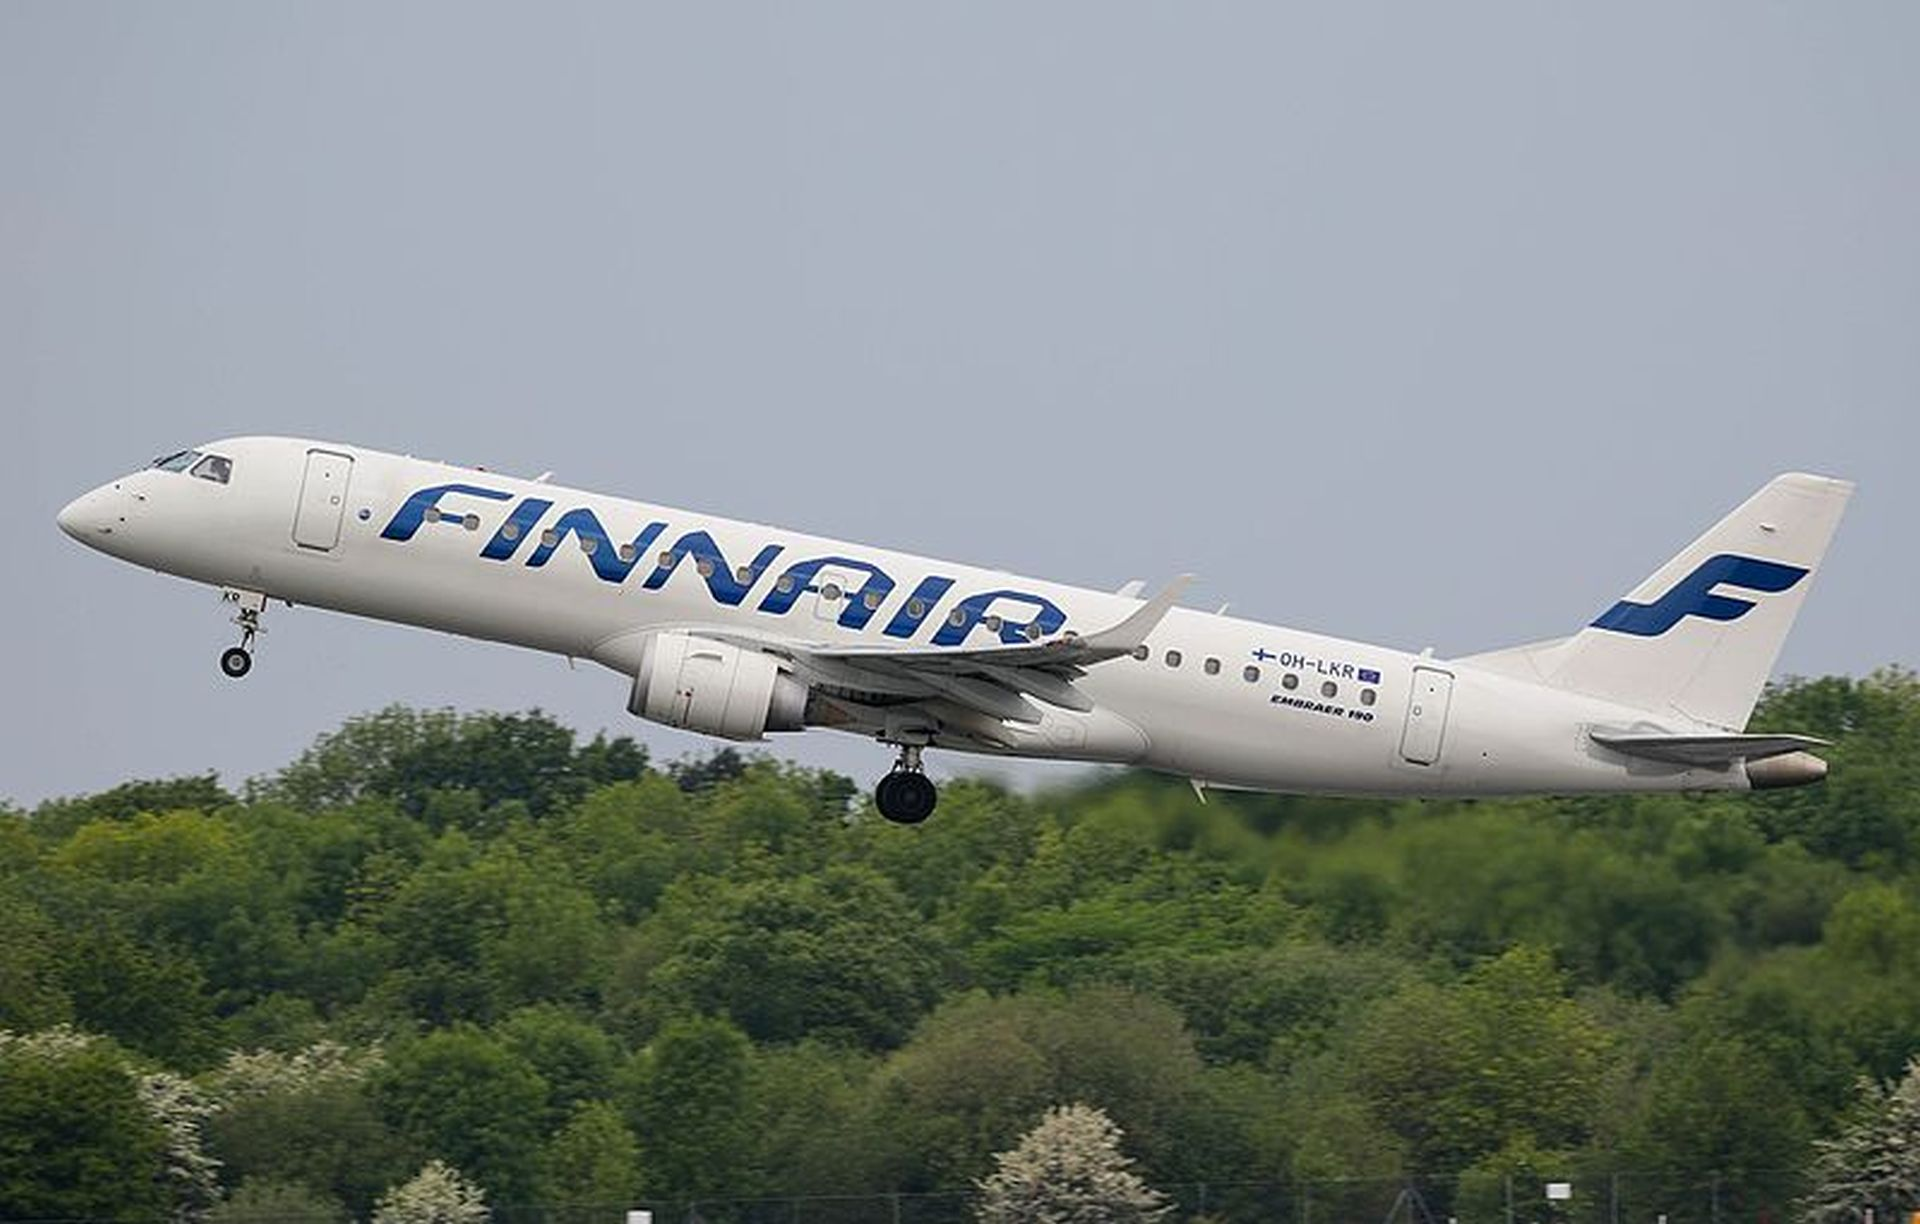 Embraer E190 v barvách Finnair. Foto: Russell Lee / CC BY (https://creativecommons.org/licenses/by/2.0)